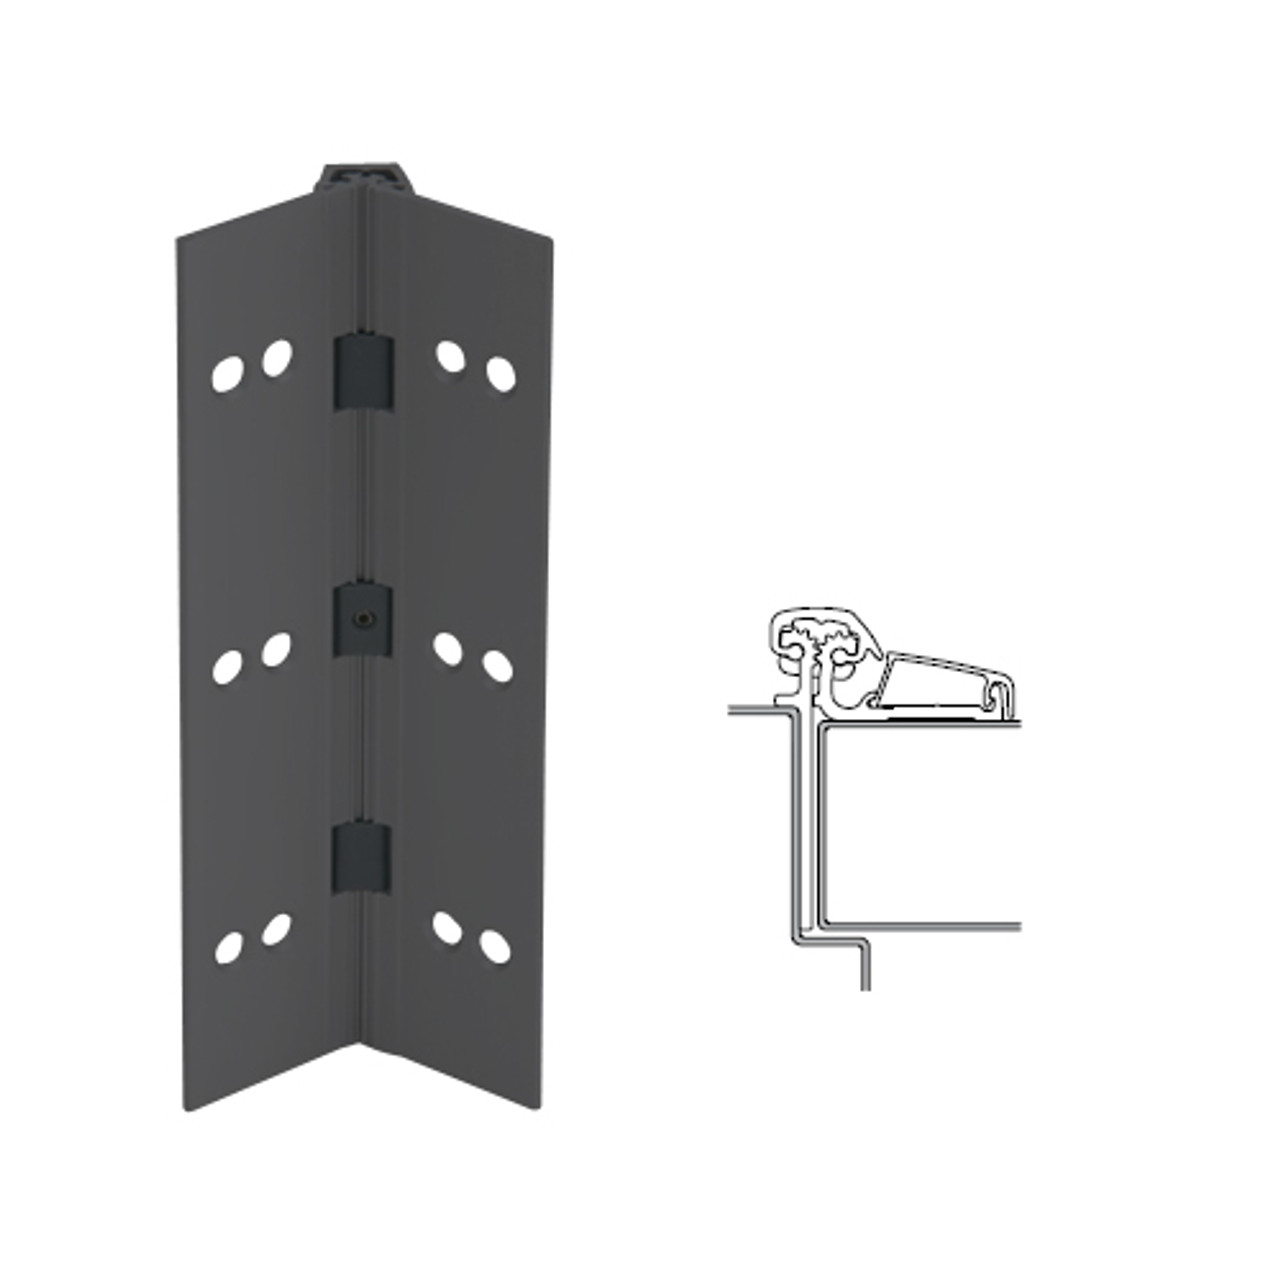 054XY-315AN-83-SECHM IVES Adjustable Half Surface Continuous Geared Hinges with Security Screws - Hex Pin Drive in Anodized Black